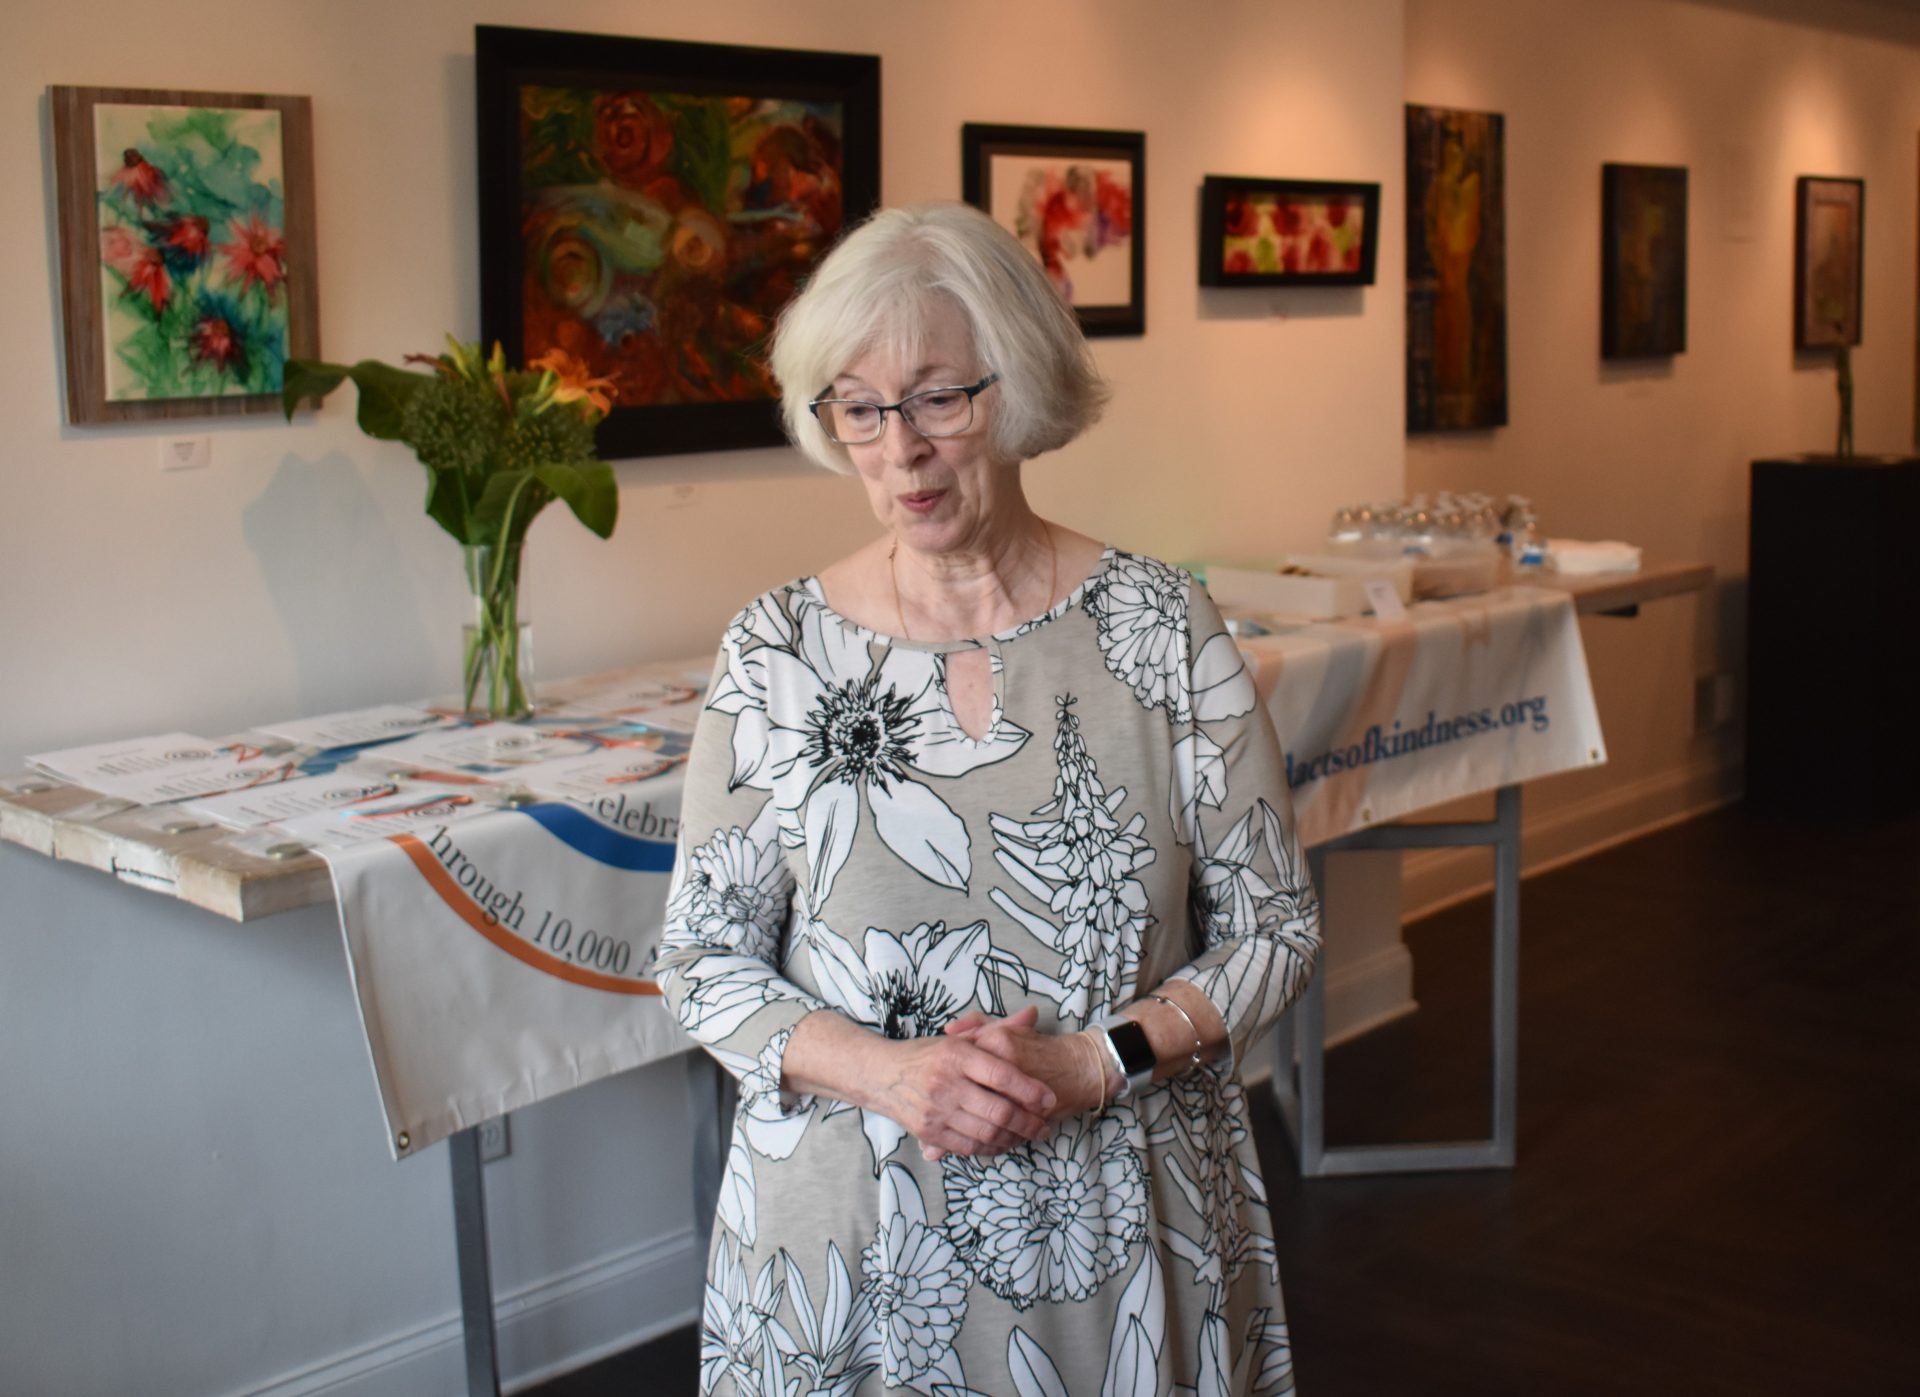 Mary Jo Fero, a member of the communications committee for 10,000 Acts of Kindness, greets people for a poetry awards contest ceremony on June 12, 2019, at The Parliament Arts Organization in York.